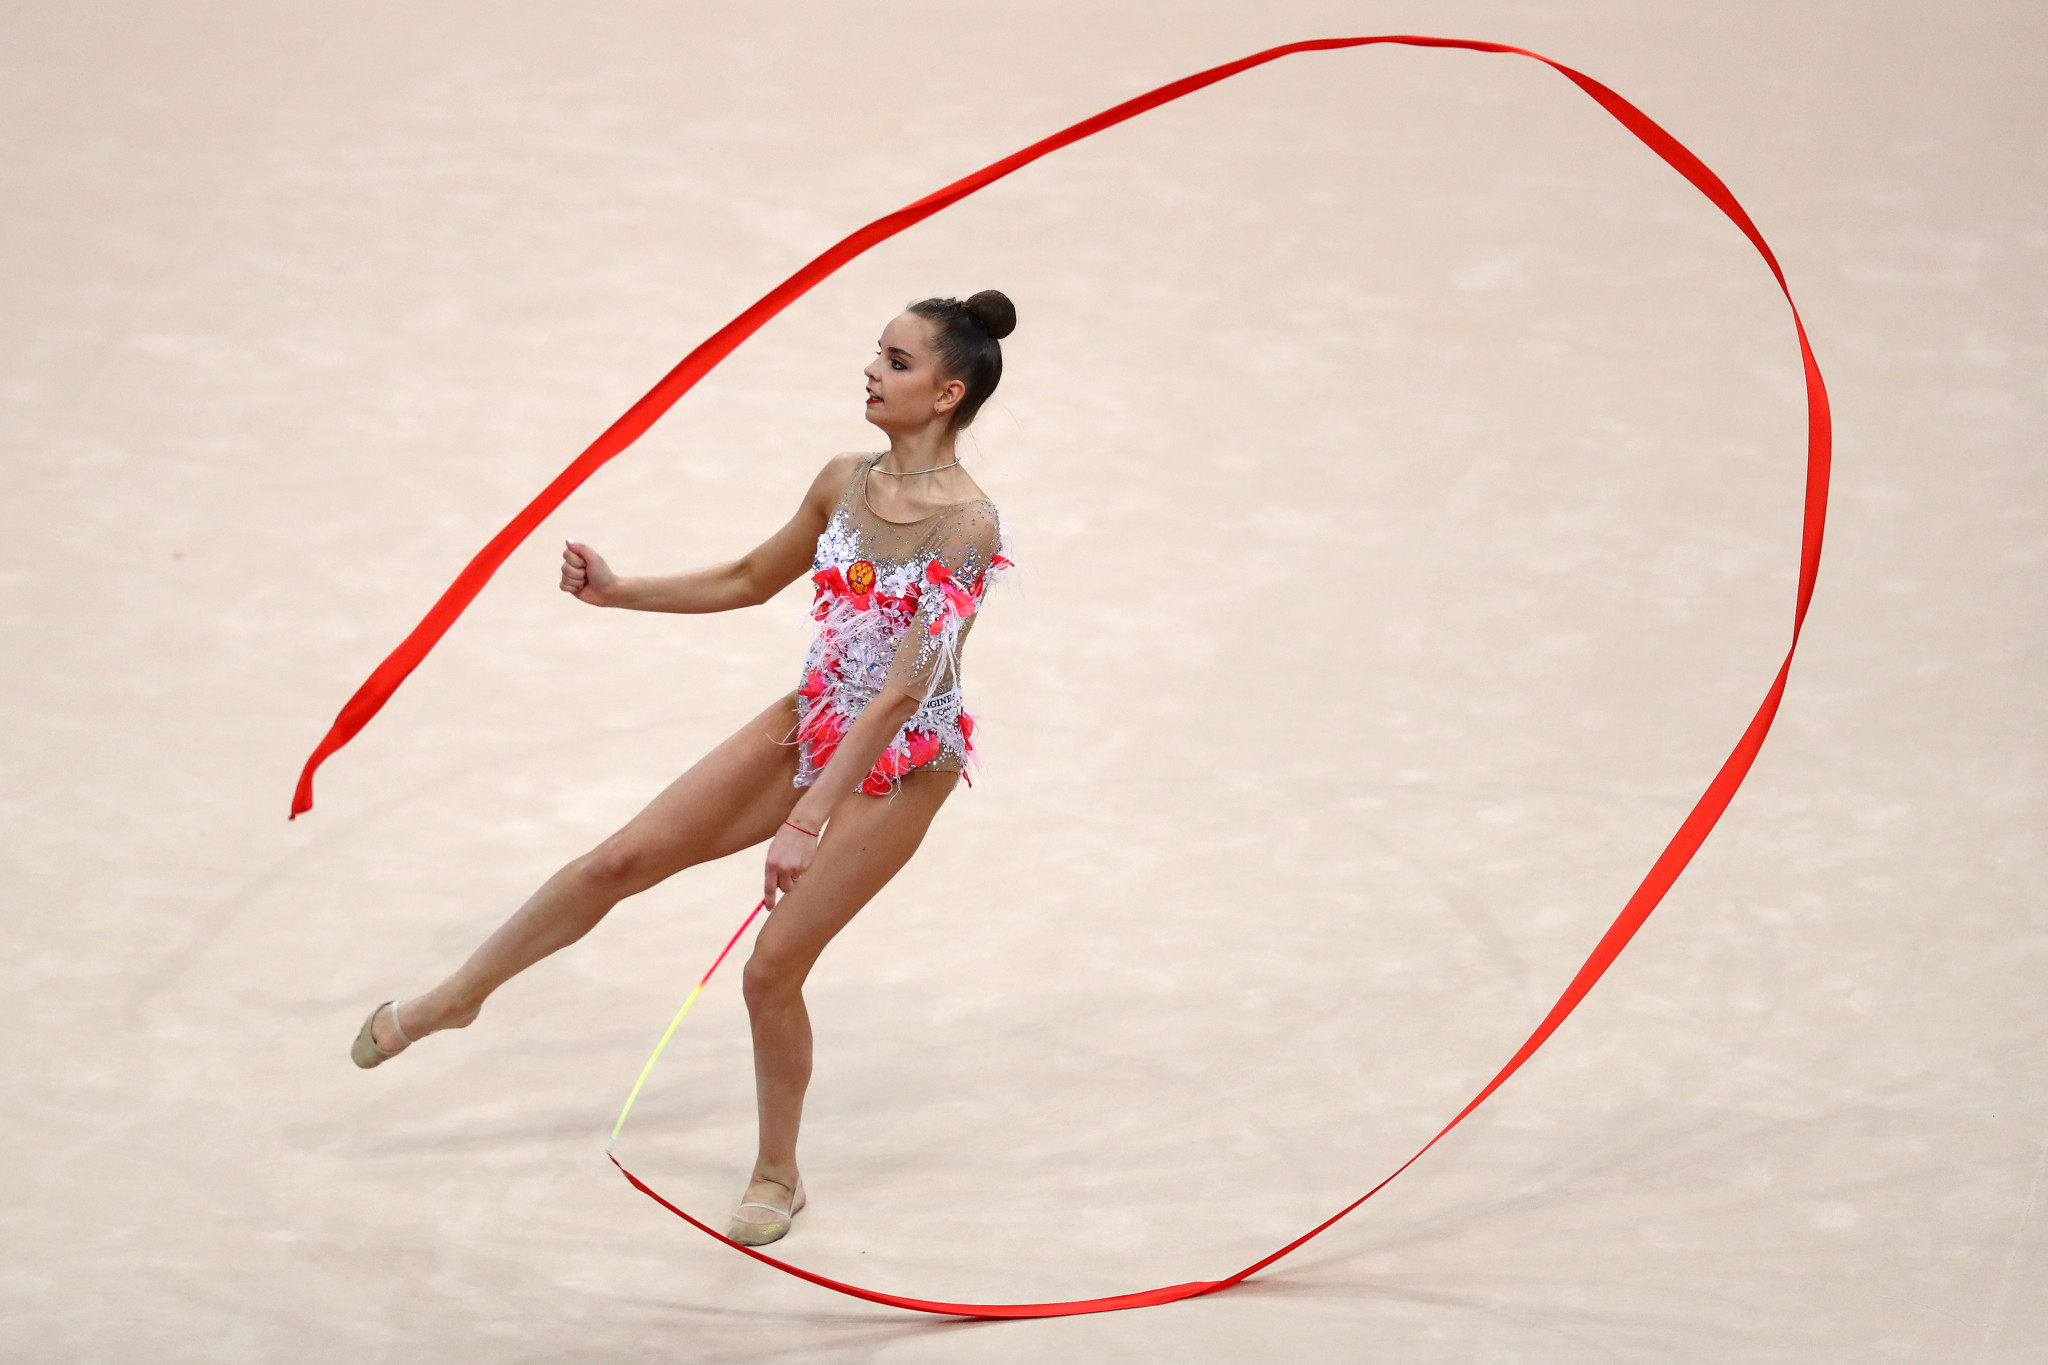 Dina Averina of Russia is leading the individual all-around competition ©Getty Images